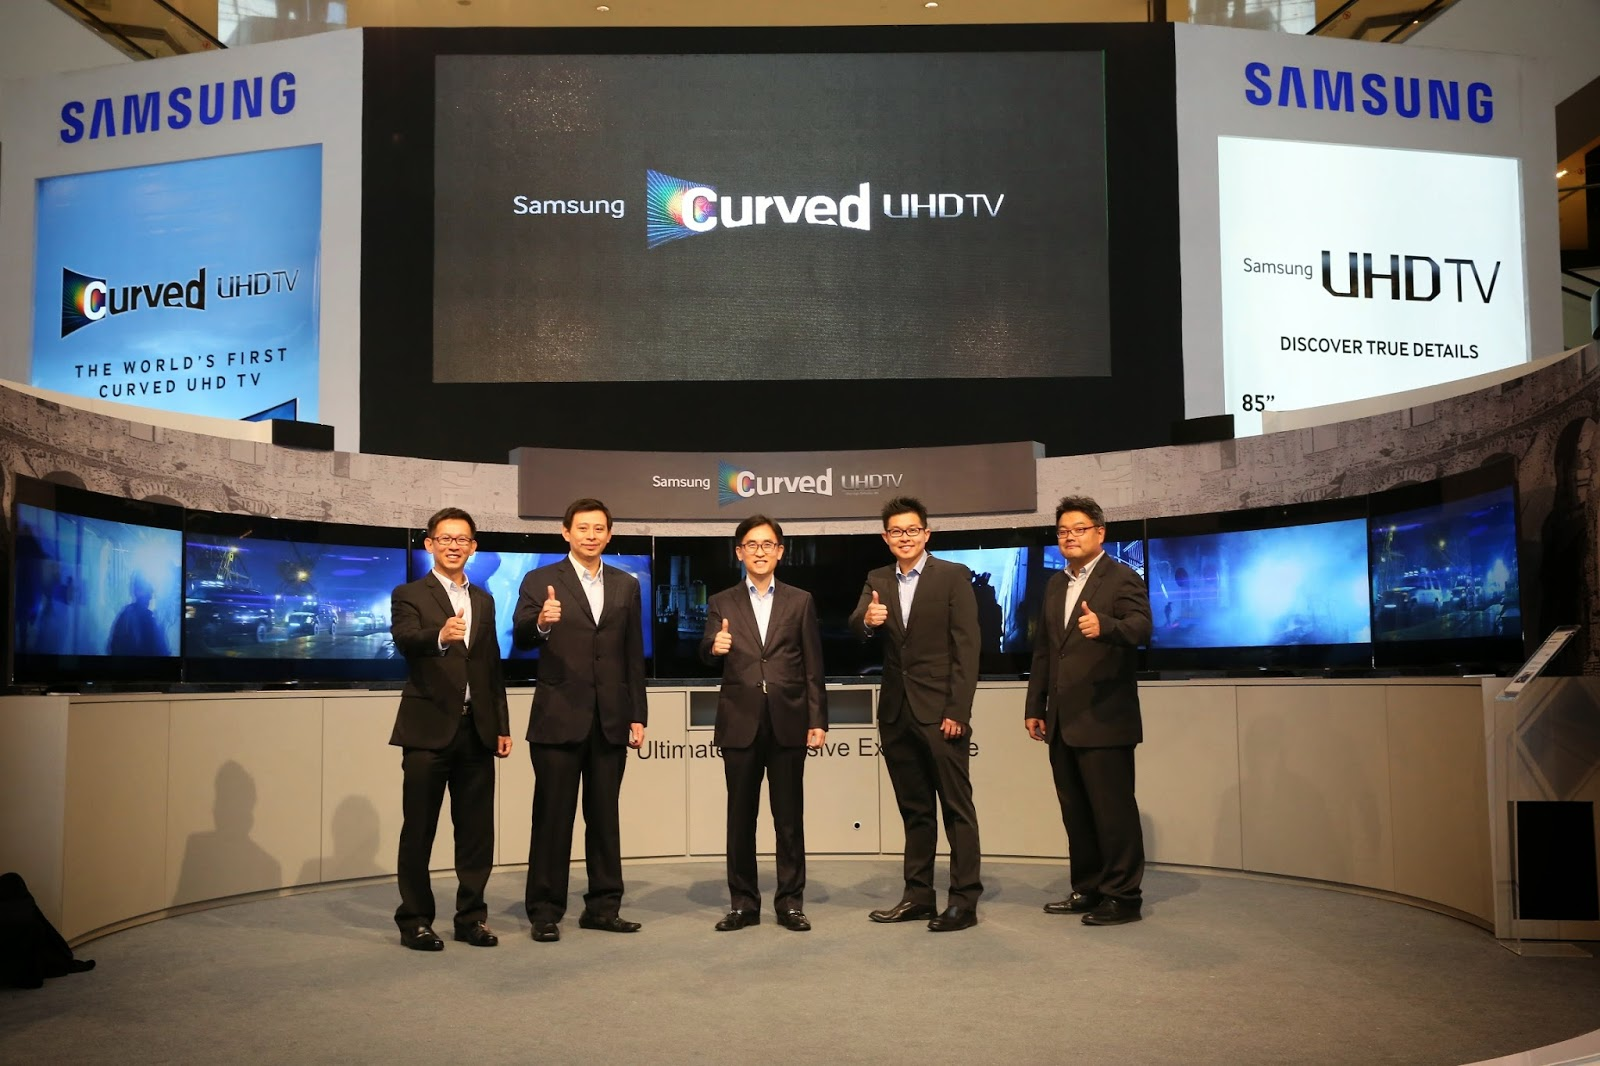 Samsung Unveiled World's First Curved Ultra High Definition (UHD) TV 6